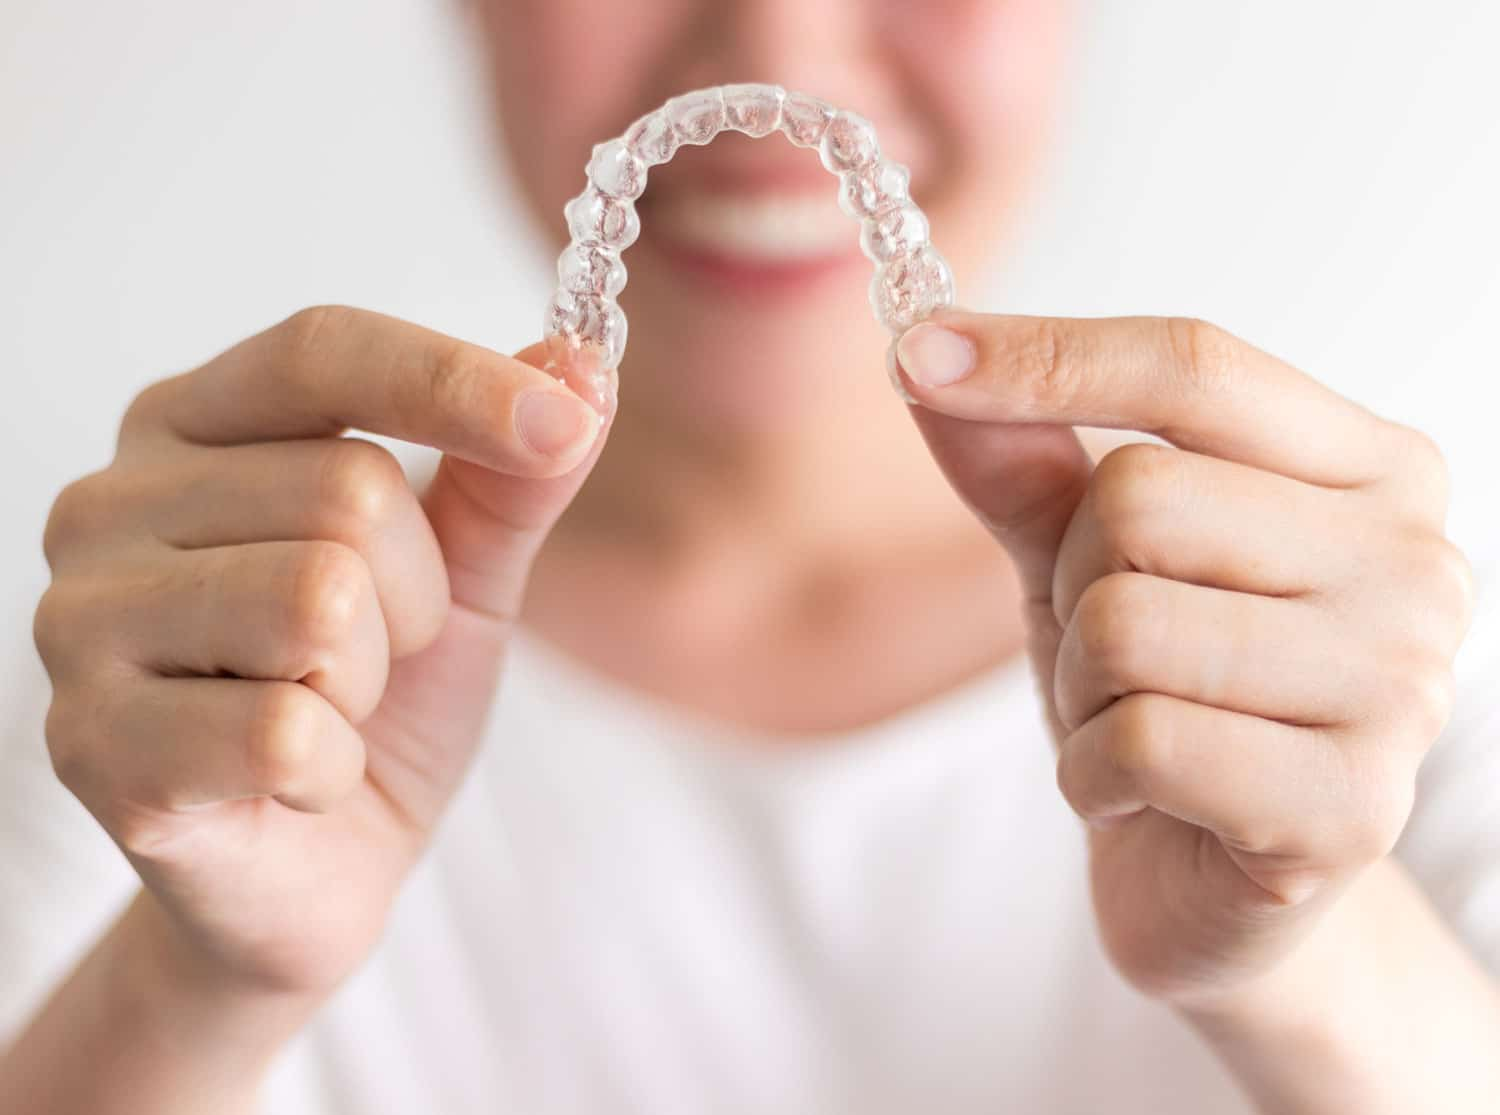 Woman holding Invisalign Braces